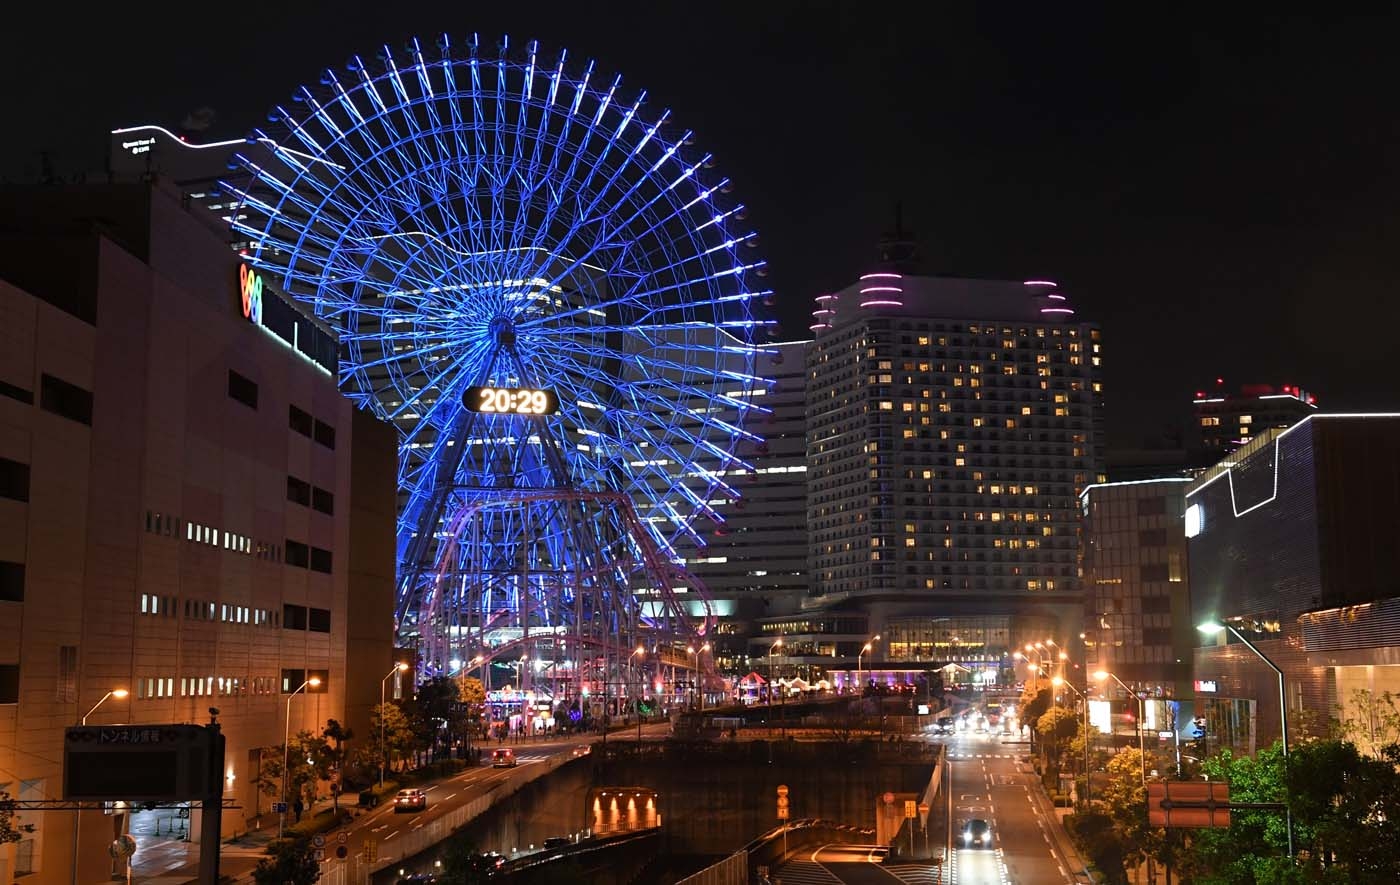 The Yokohama giant ferris wheel, Cosmo Clock 21, is seen moments before its lights were turned off for the Earth Hour environmental campaign in Yokohama on March 25, 2017. / AFP PHOTO / Toshifumi KITAMURA